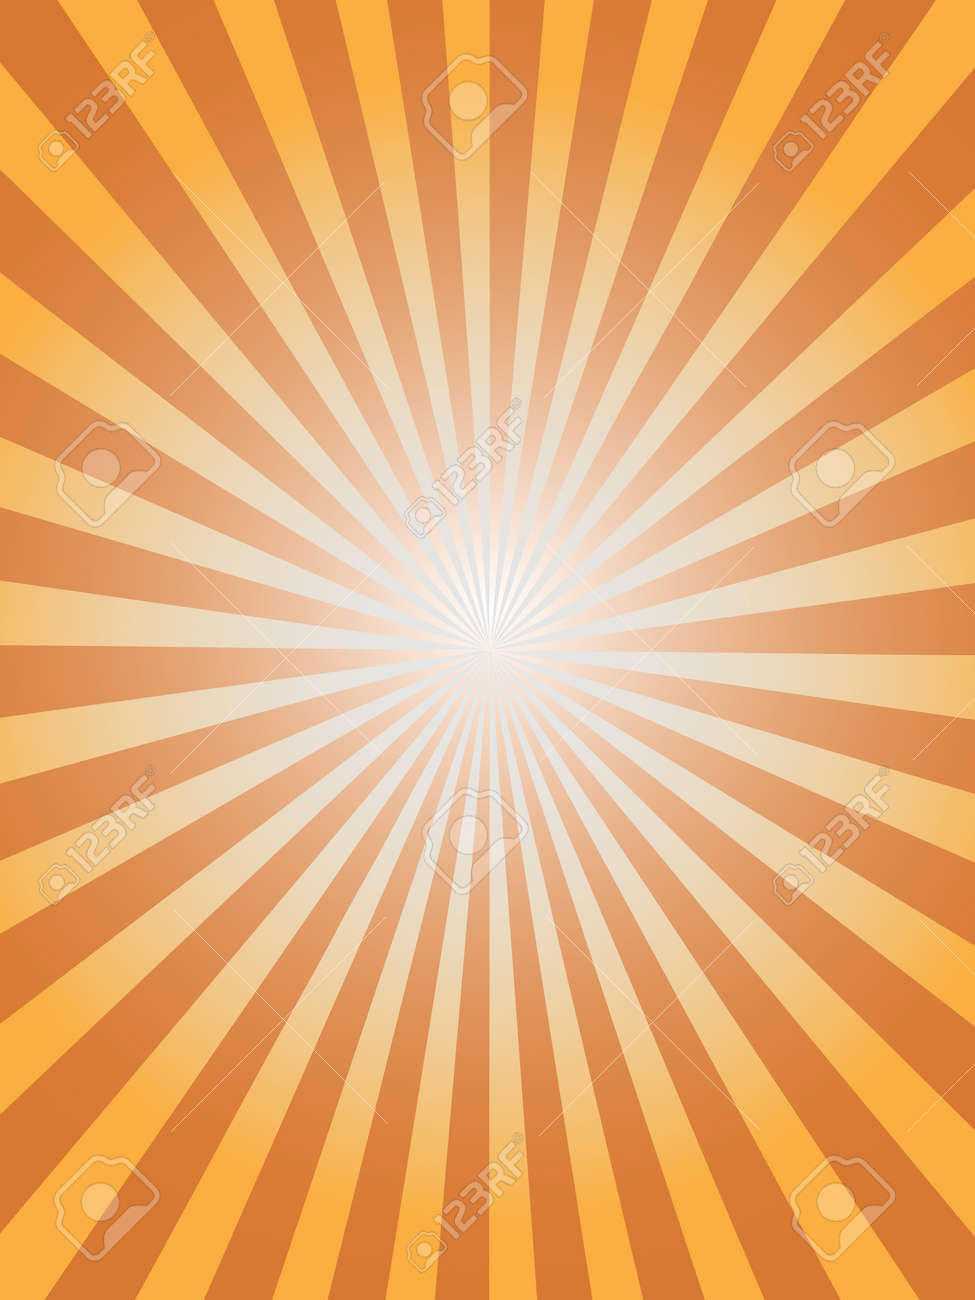 simple sunray background for design Stock Vector - 8001637